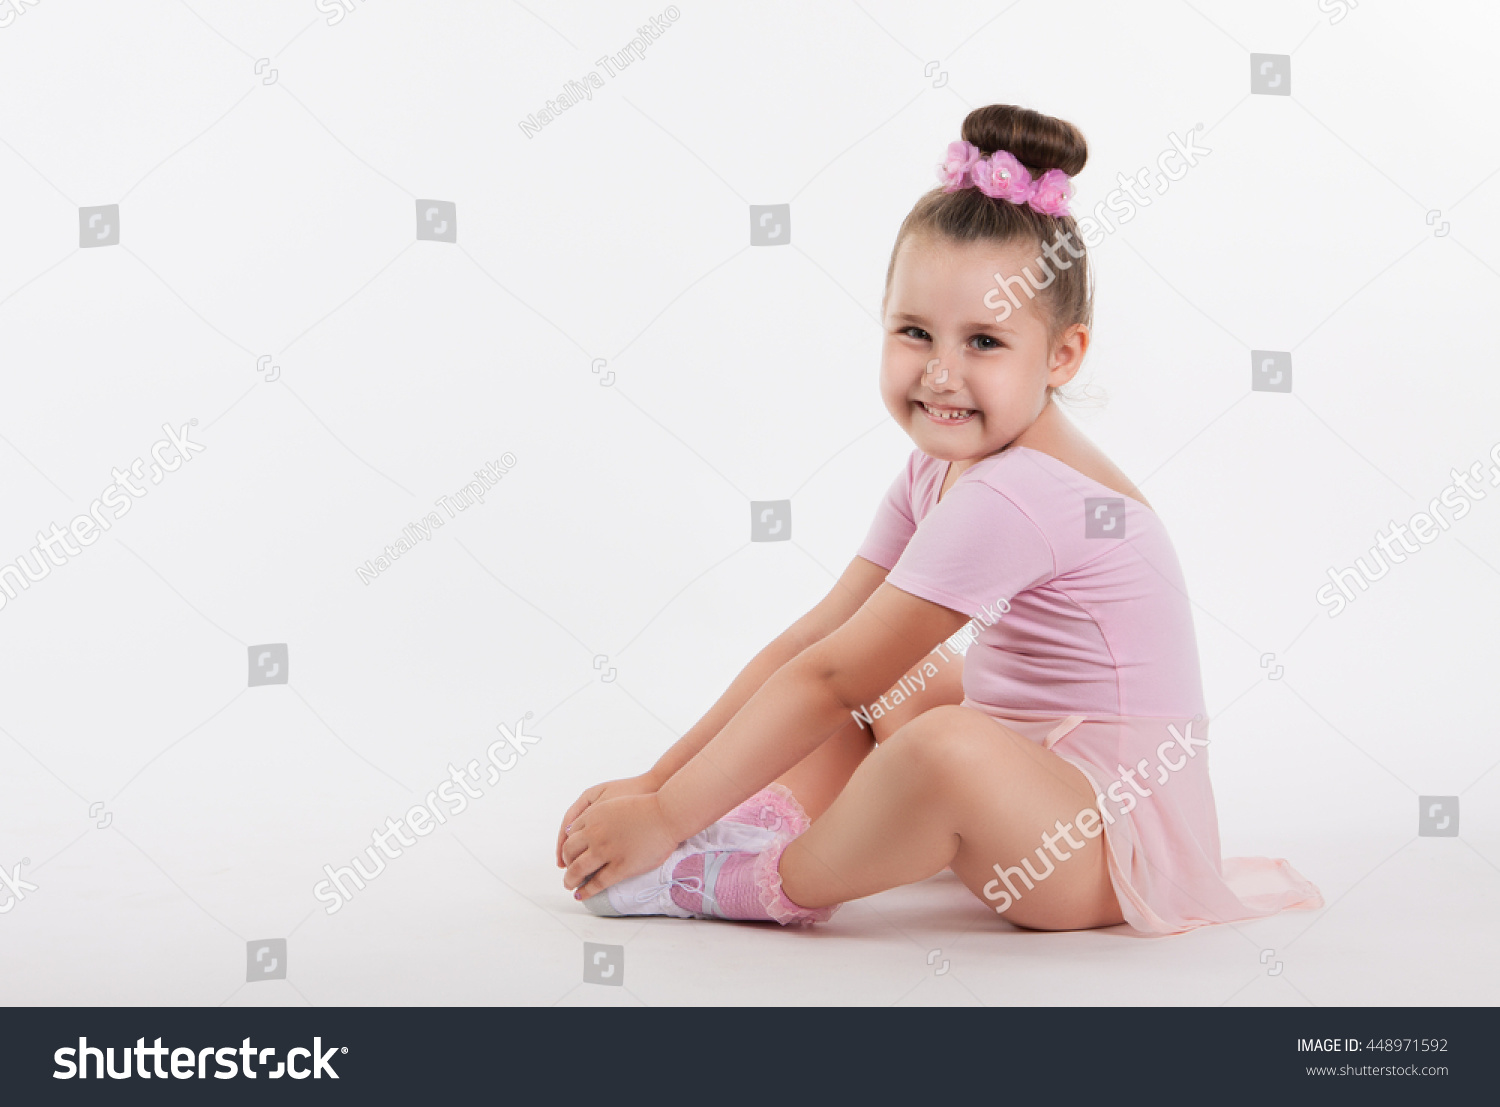 5d0435403 Little girl is sitting on the floor. The concept of a happy ...